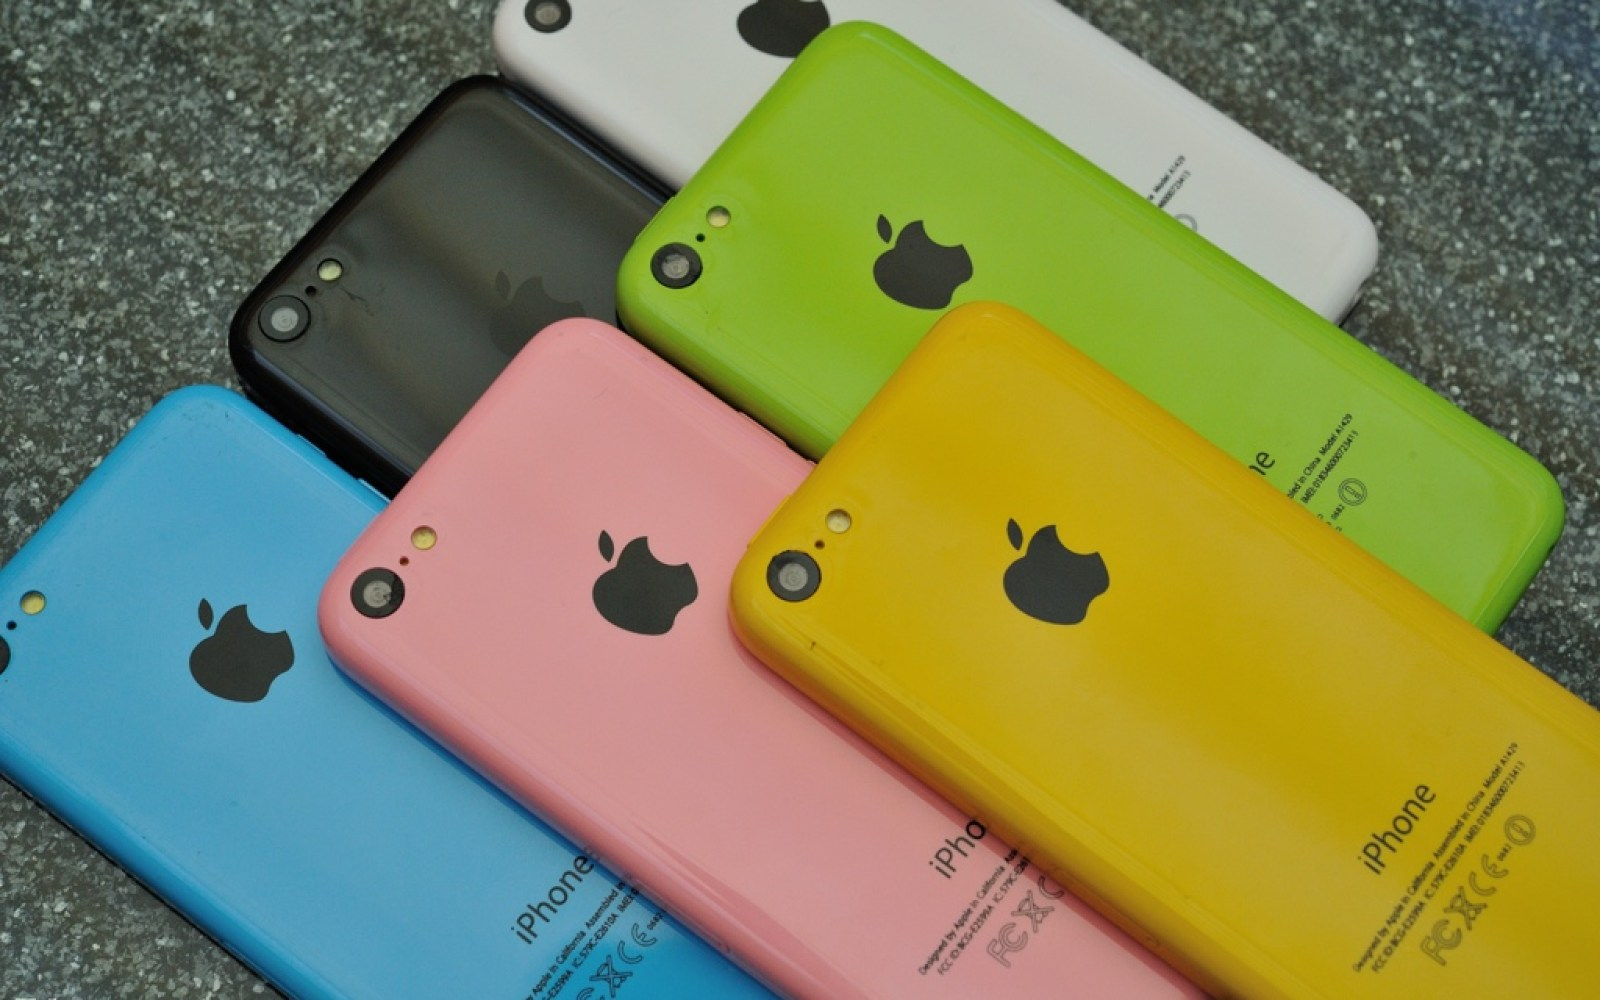 WSJ: China Mobile to carry the less-expensive iPhone 5C